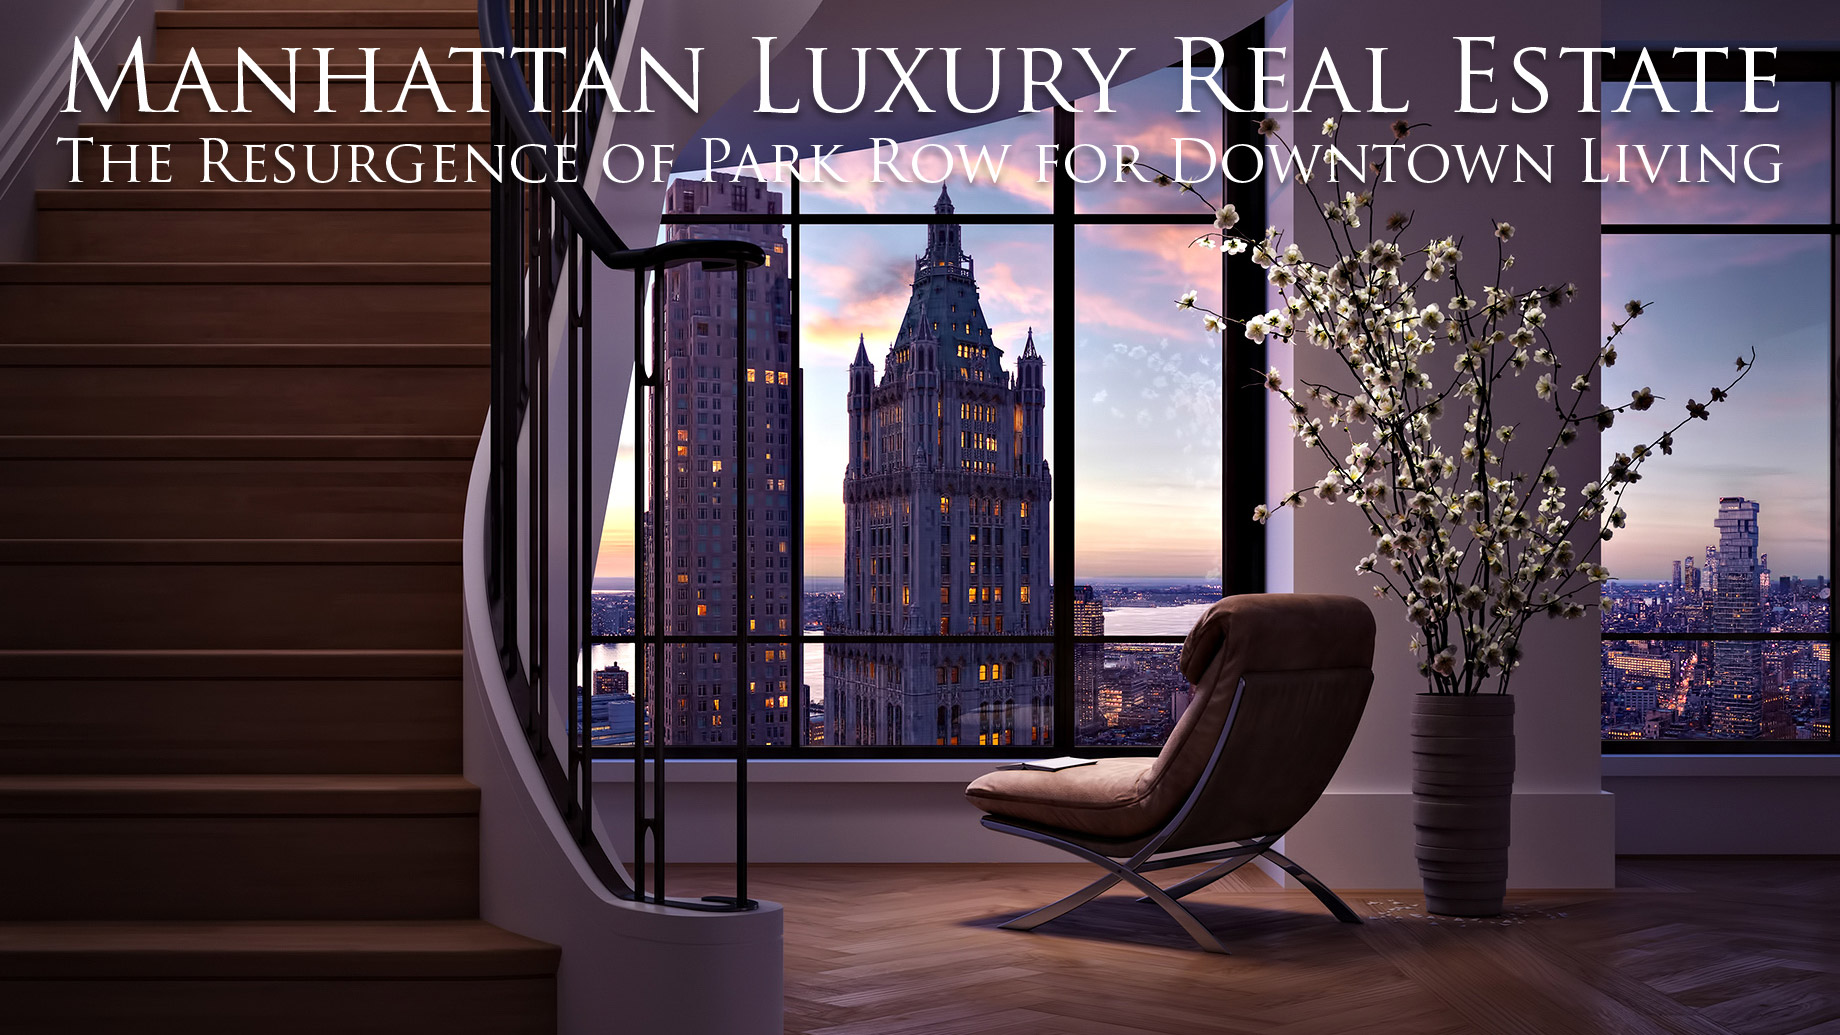 Manhattan Luxury Real Estate - The Resurgence of Park Row for Downtown Living